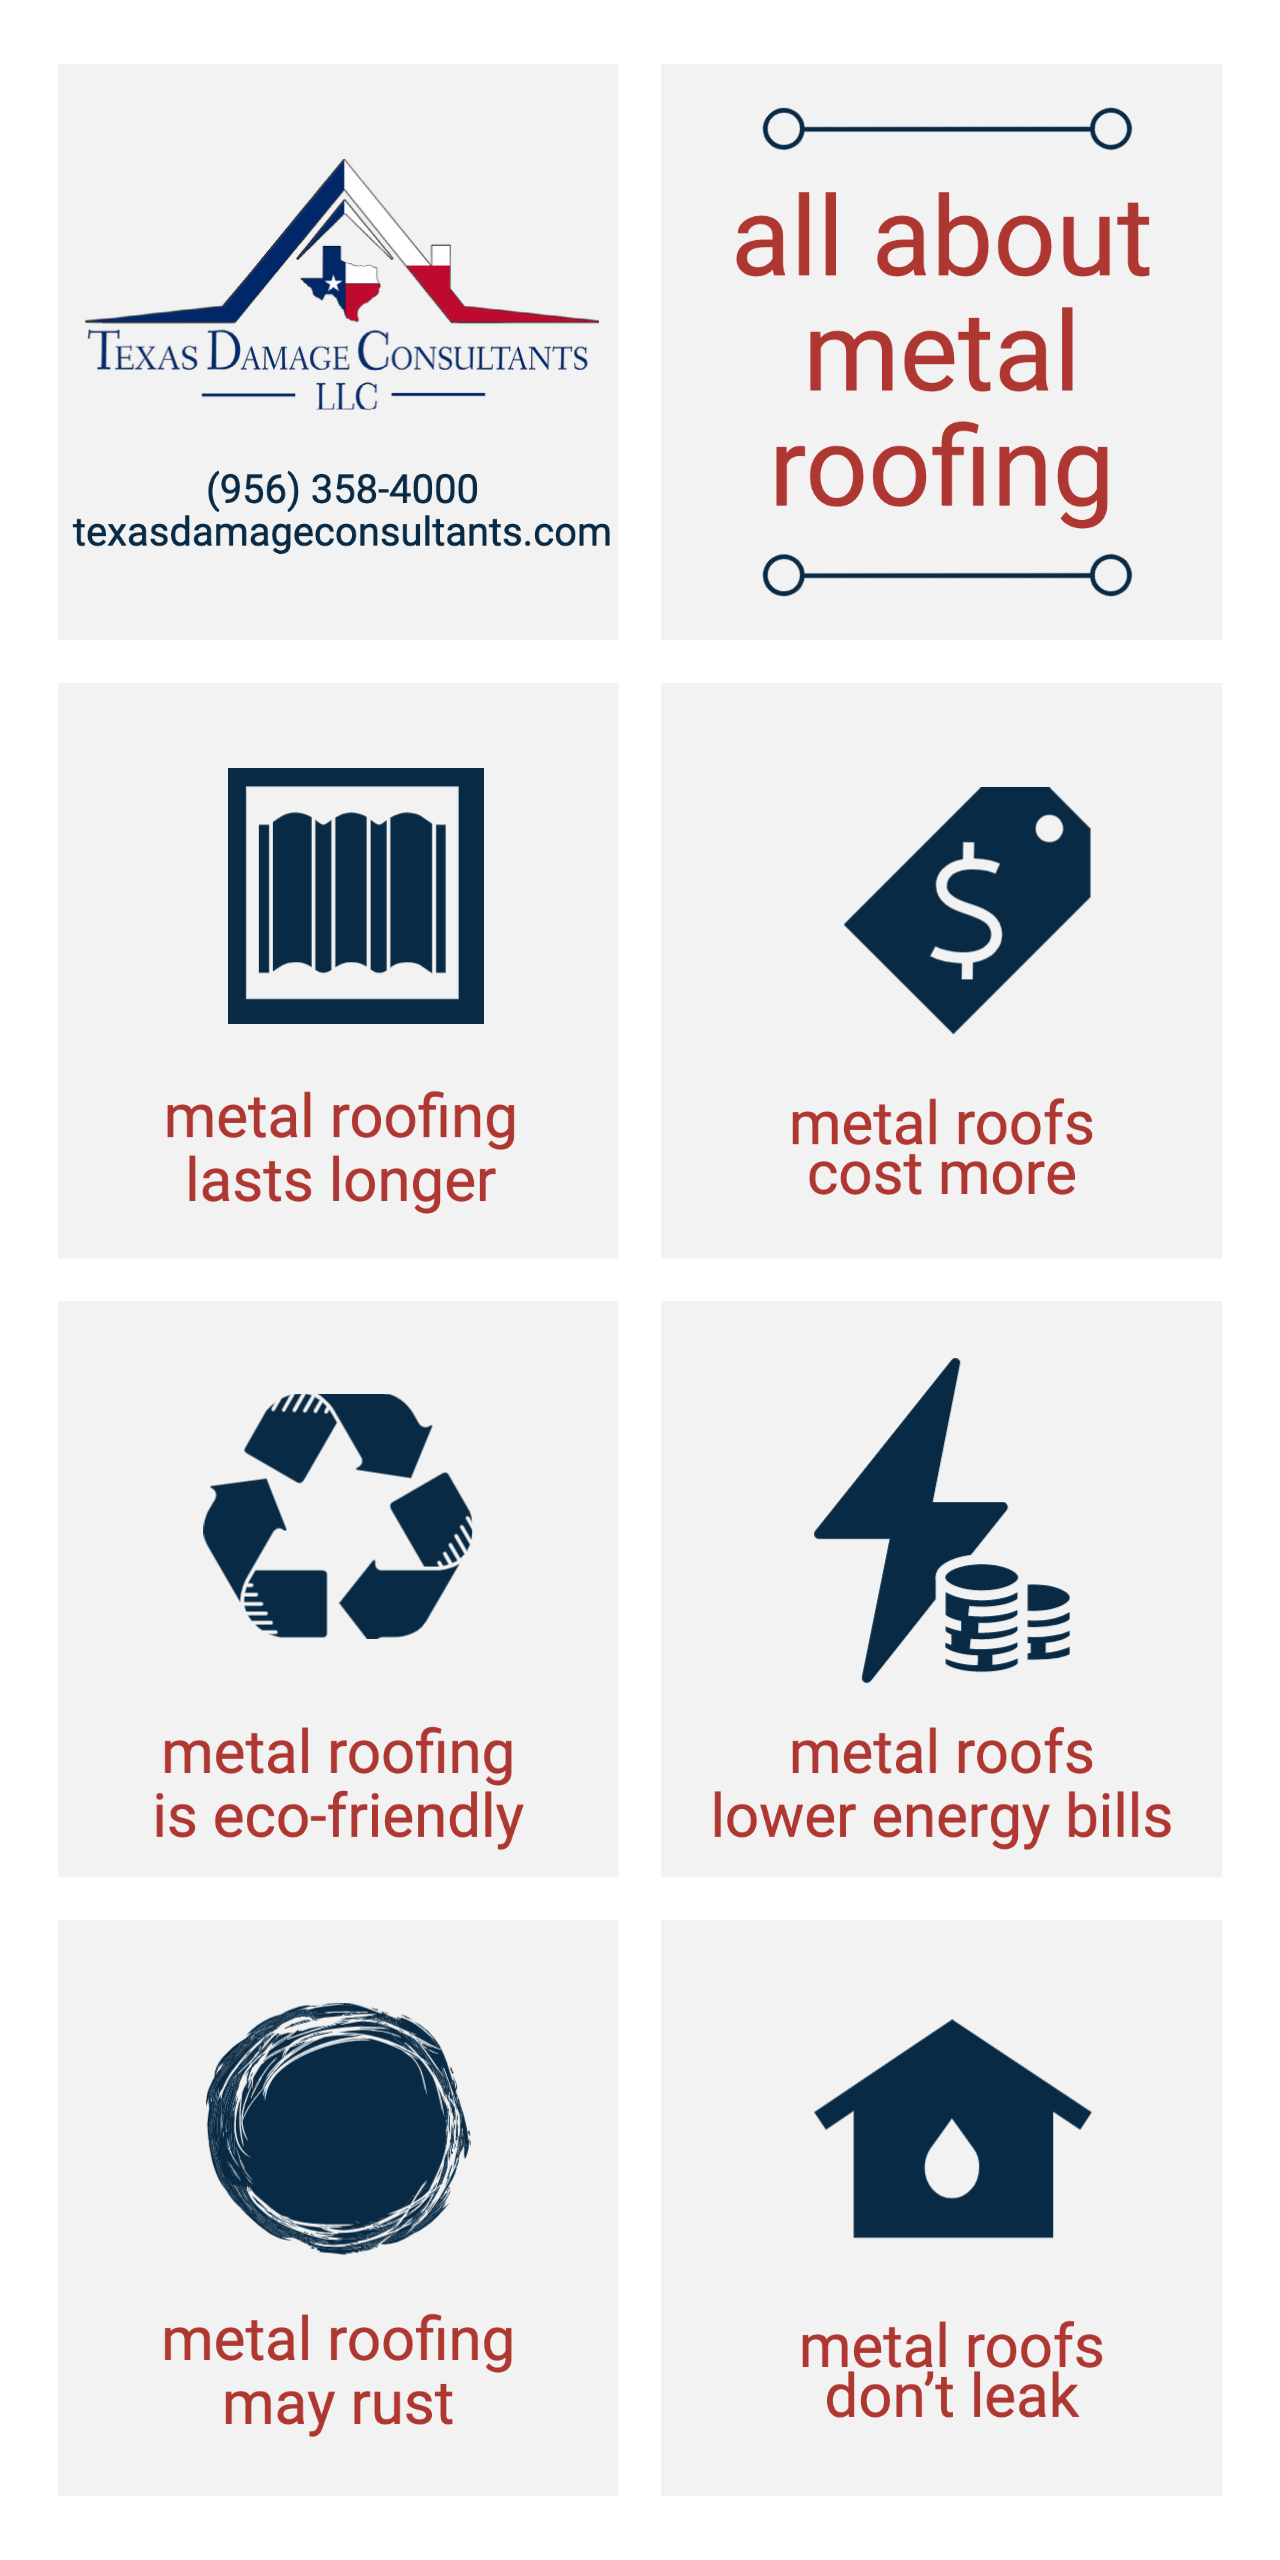 Metal roofing facts infographic.